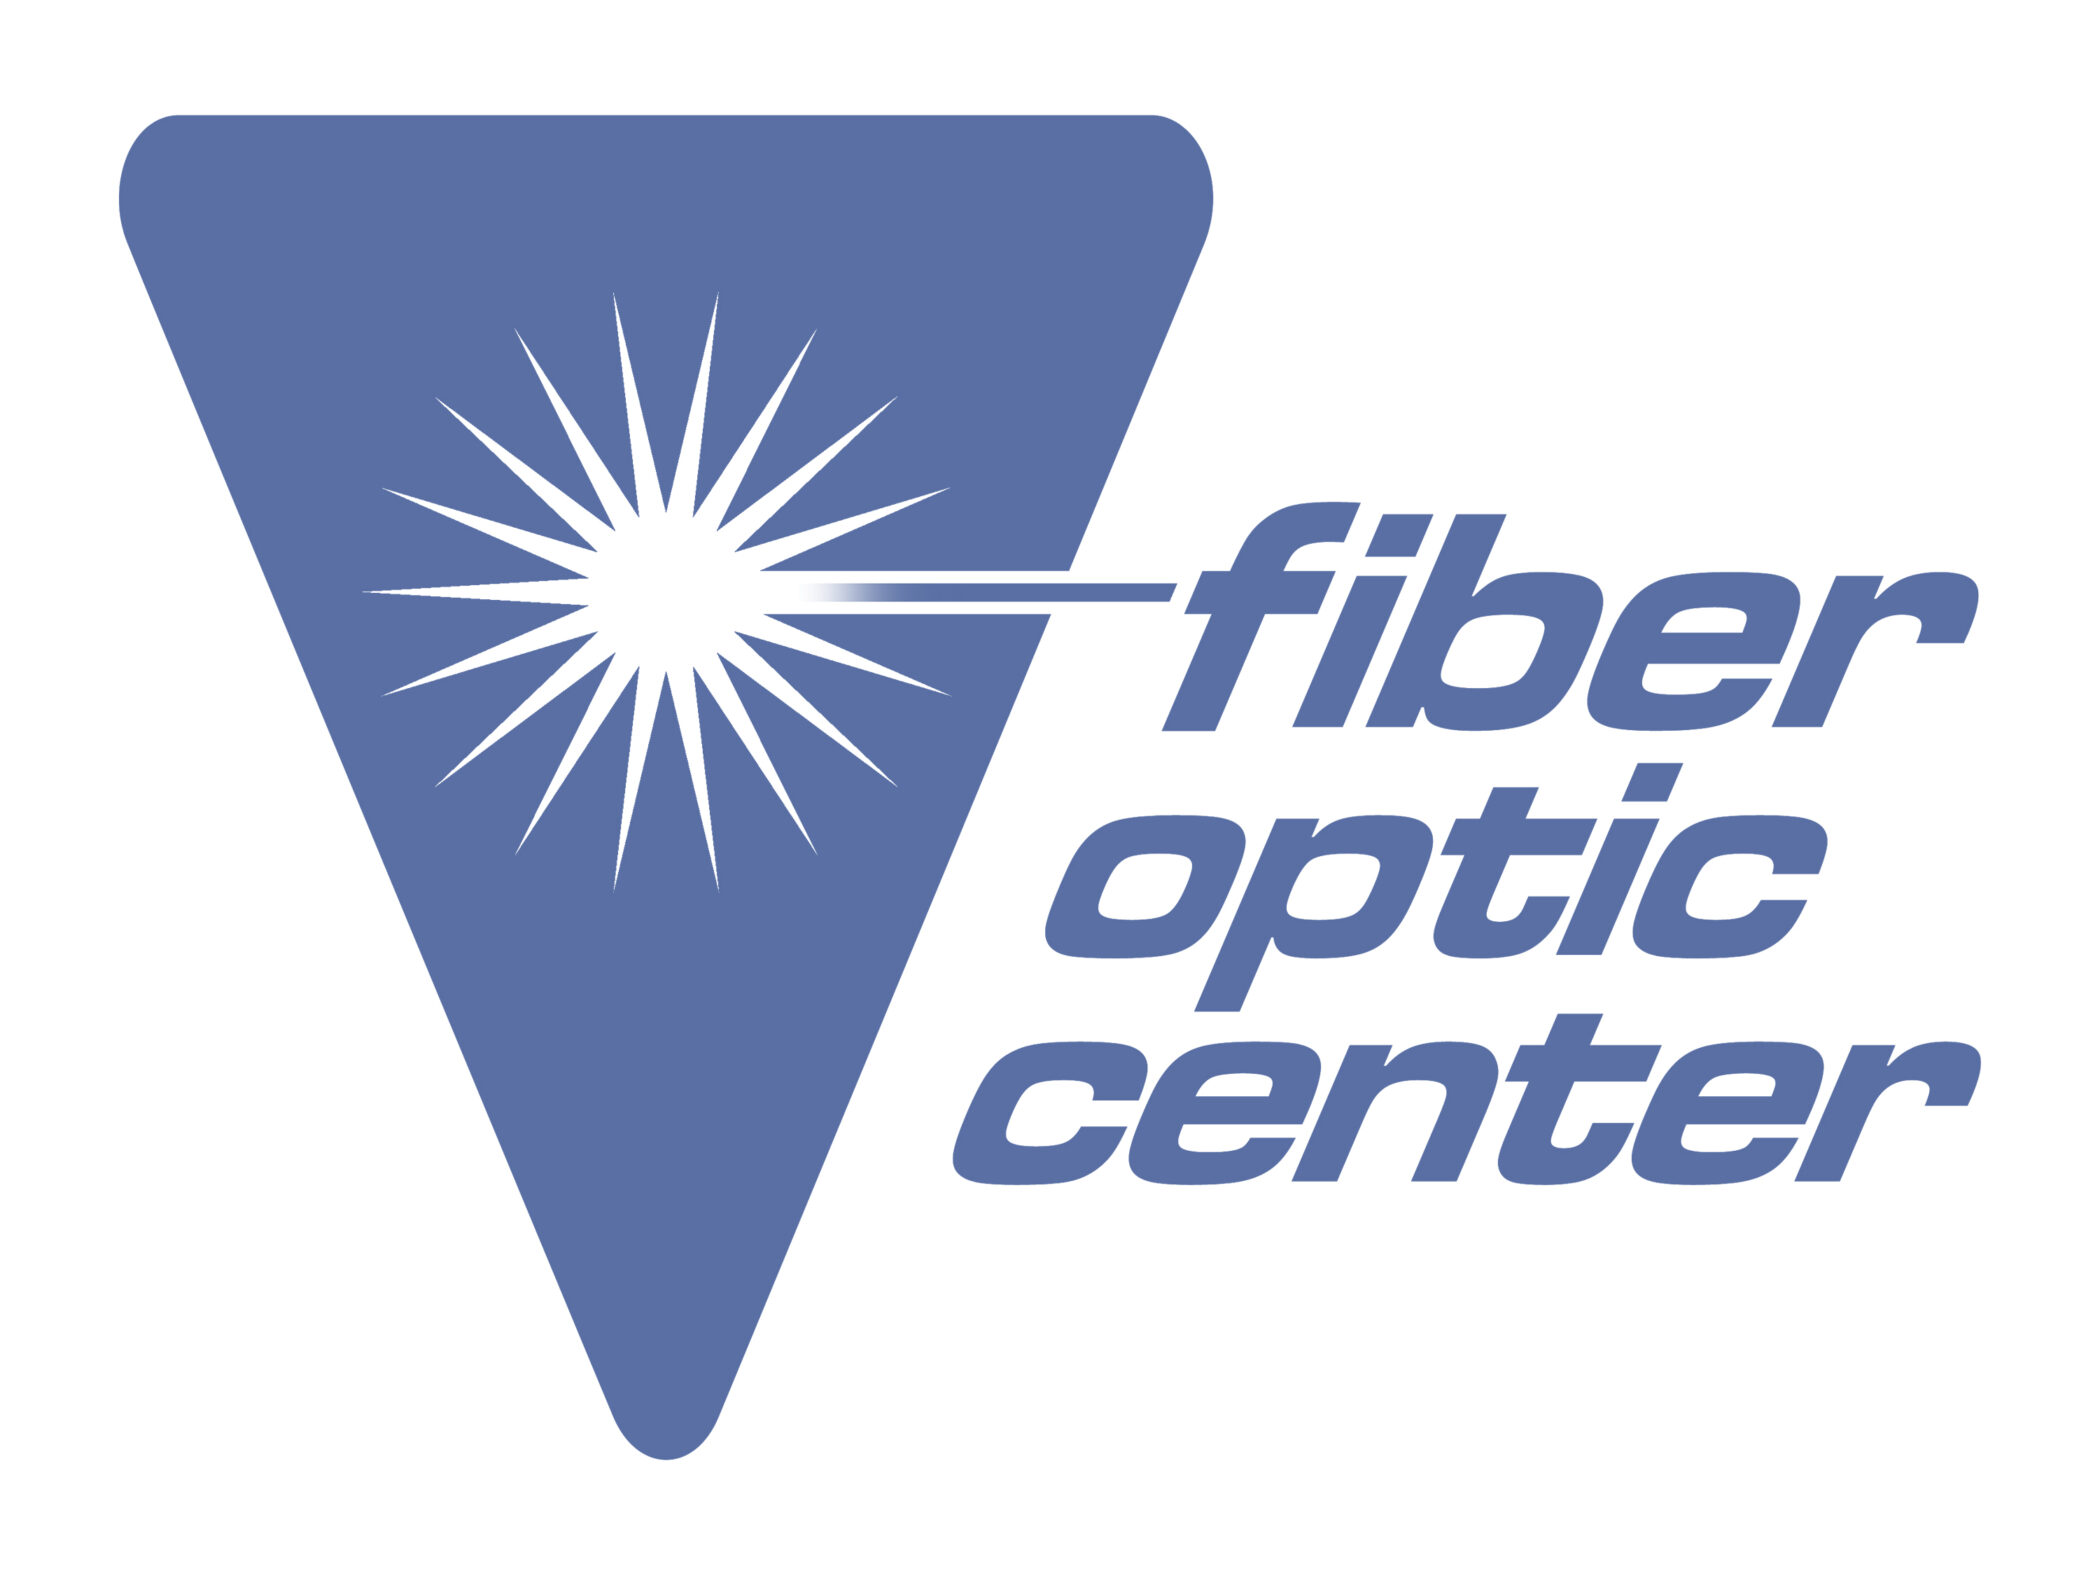 Fiber Optic Center is located in New Bedford MA